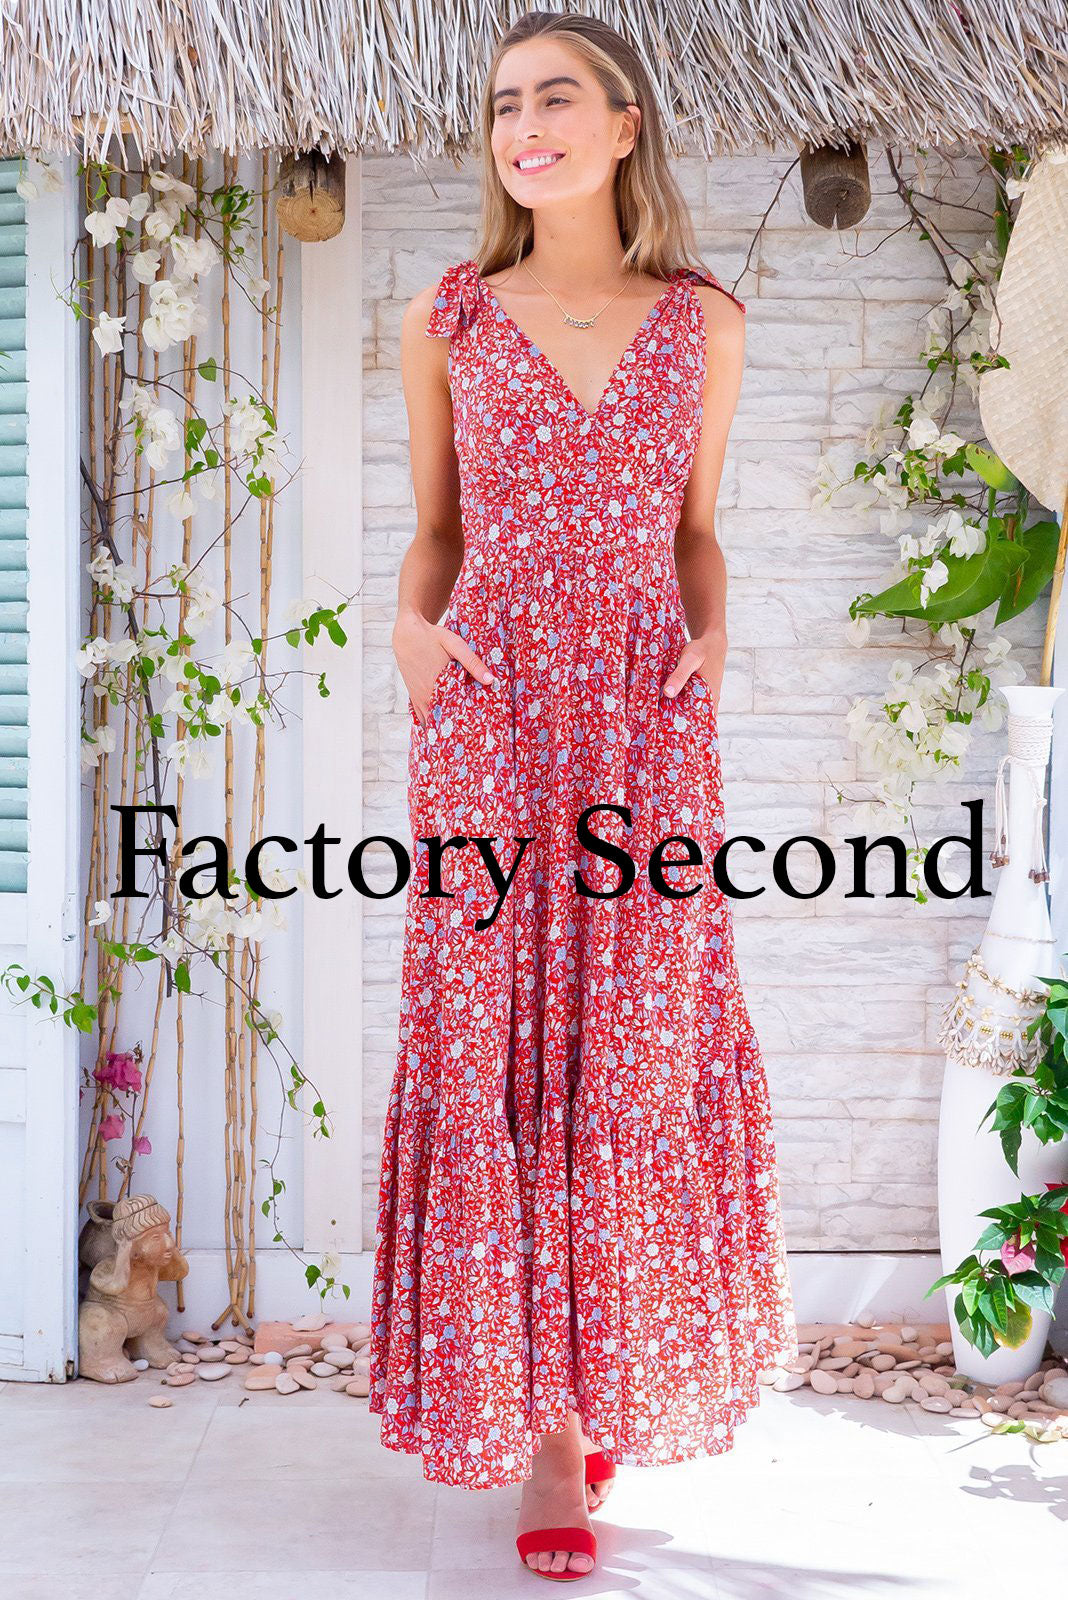 Luana Jaipur Red Maxi Dress, bohemian summer style, side pockets, deep v neckline, basque waist, gathered bust, adjustable shoulder ties, tiered skirt, elasticated shirring on back waistband, bright red tomato base with small blue and white floral print.